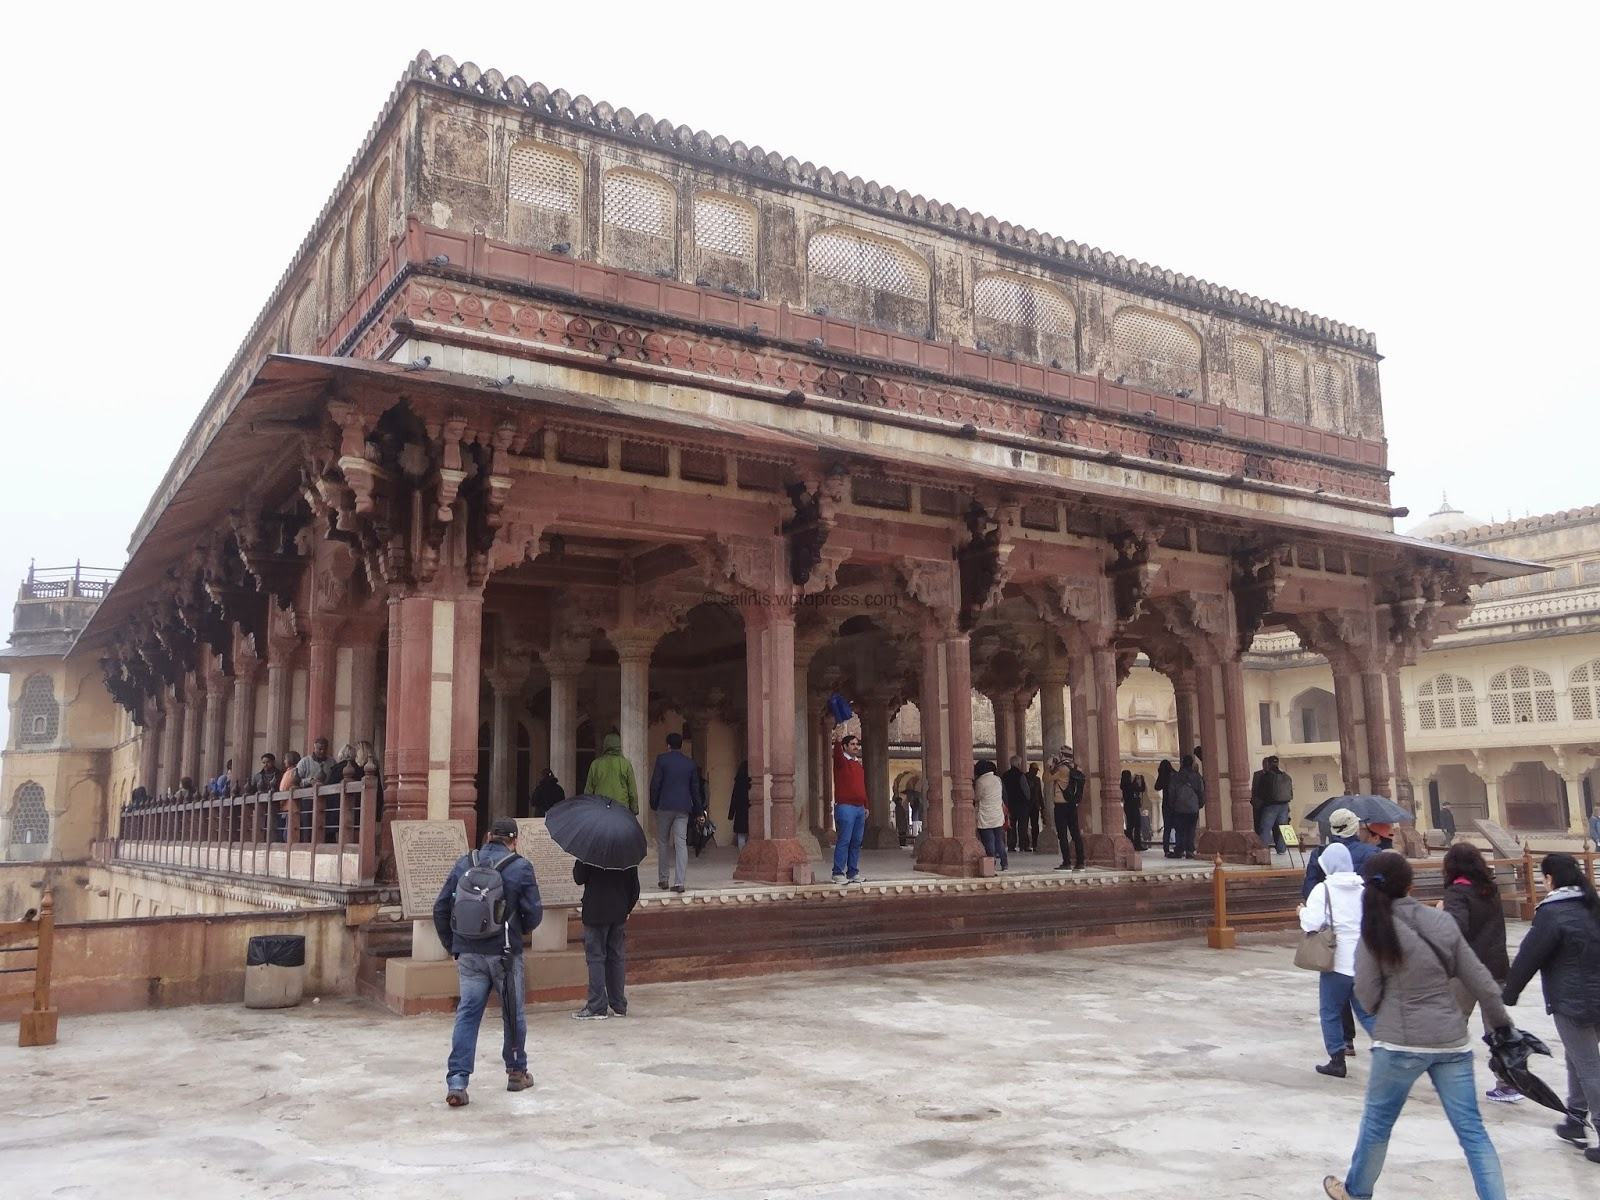 Diwaan-E-Aam - Red Sand Stone Hall Amber fort - Rajasthan India - Pick, Pack, Go